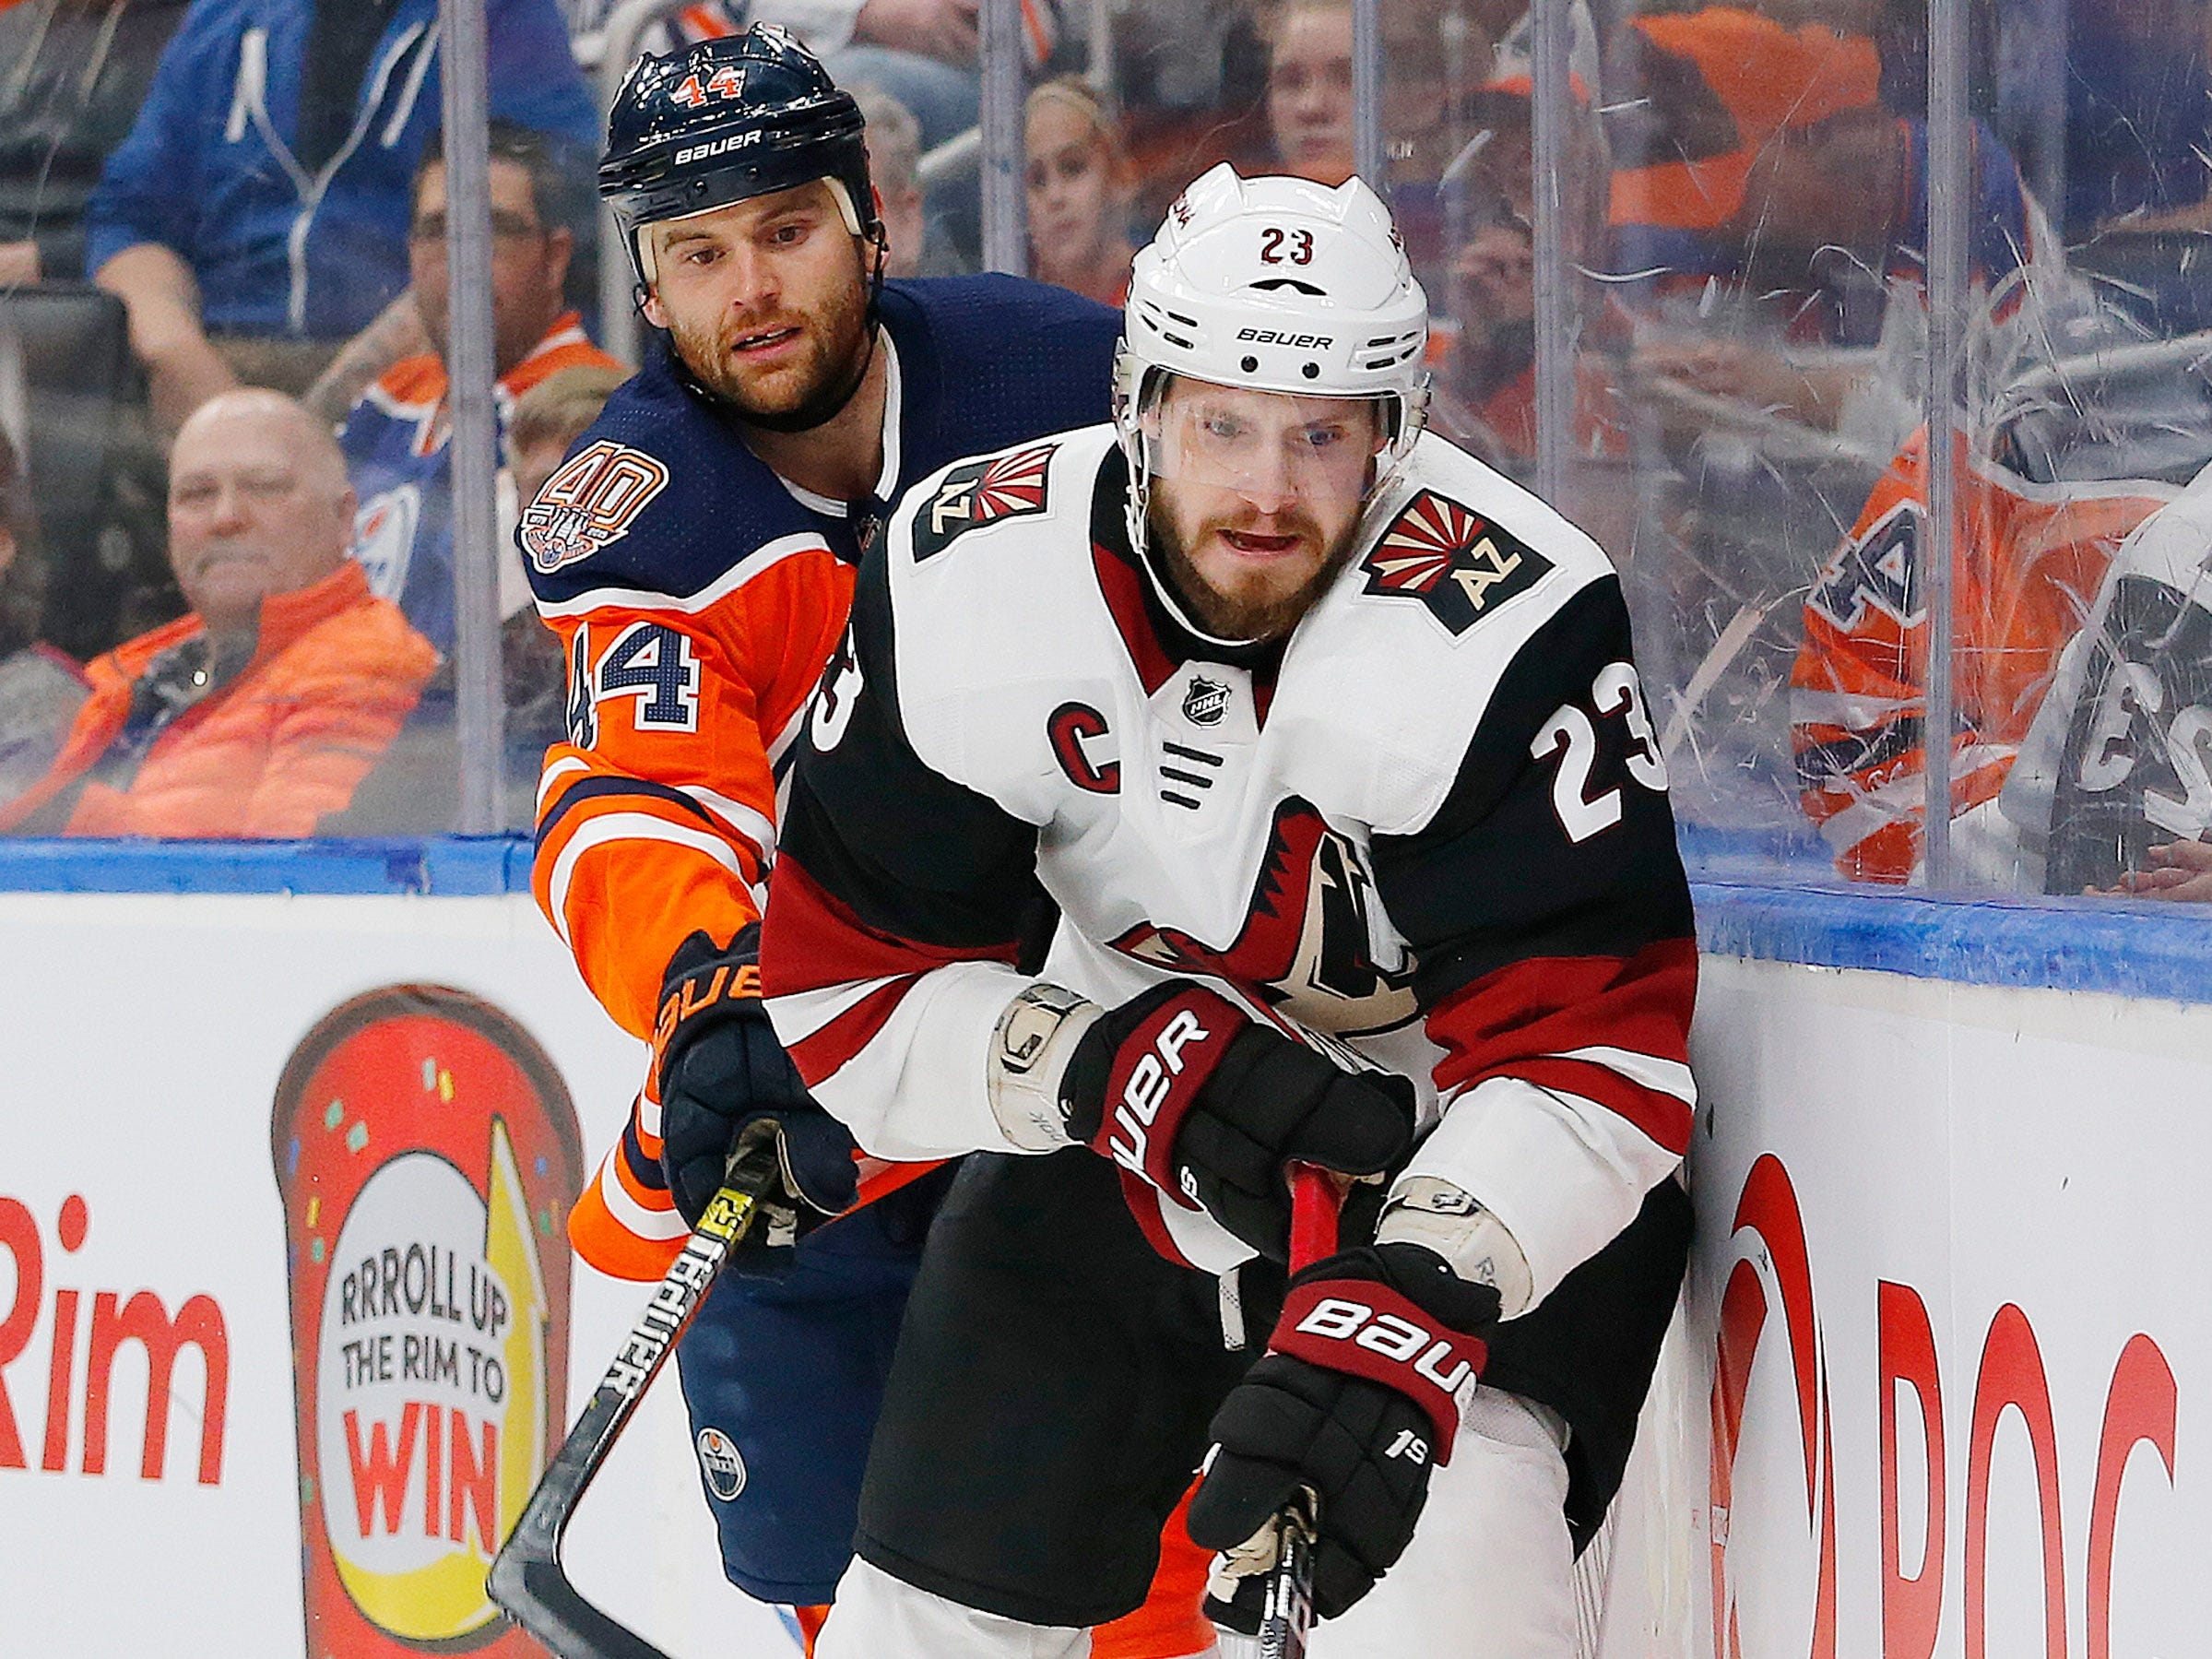 Feb 19, 2019; Edmonton, Alberta, CAN; Edmonton Oilers forward Zack Kassian (44) defends against Arizona Coyotes defensemen Oliver Ekman-Larsson (23) during the first period at Rogers Place. Mandatory Credit: Perry Nelson-USA TODAY Sports